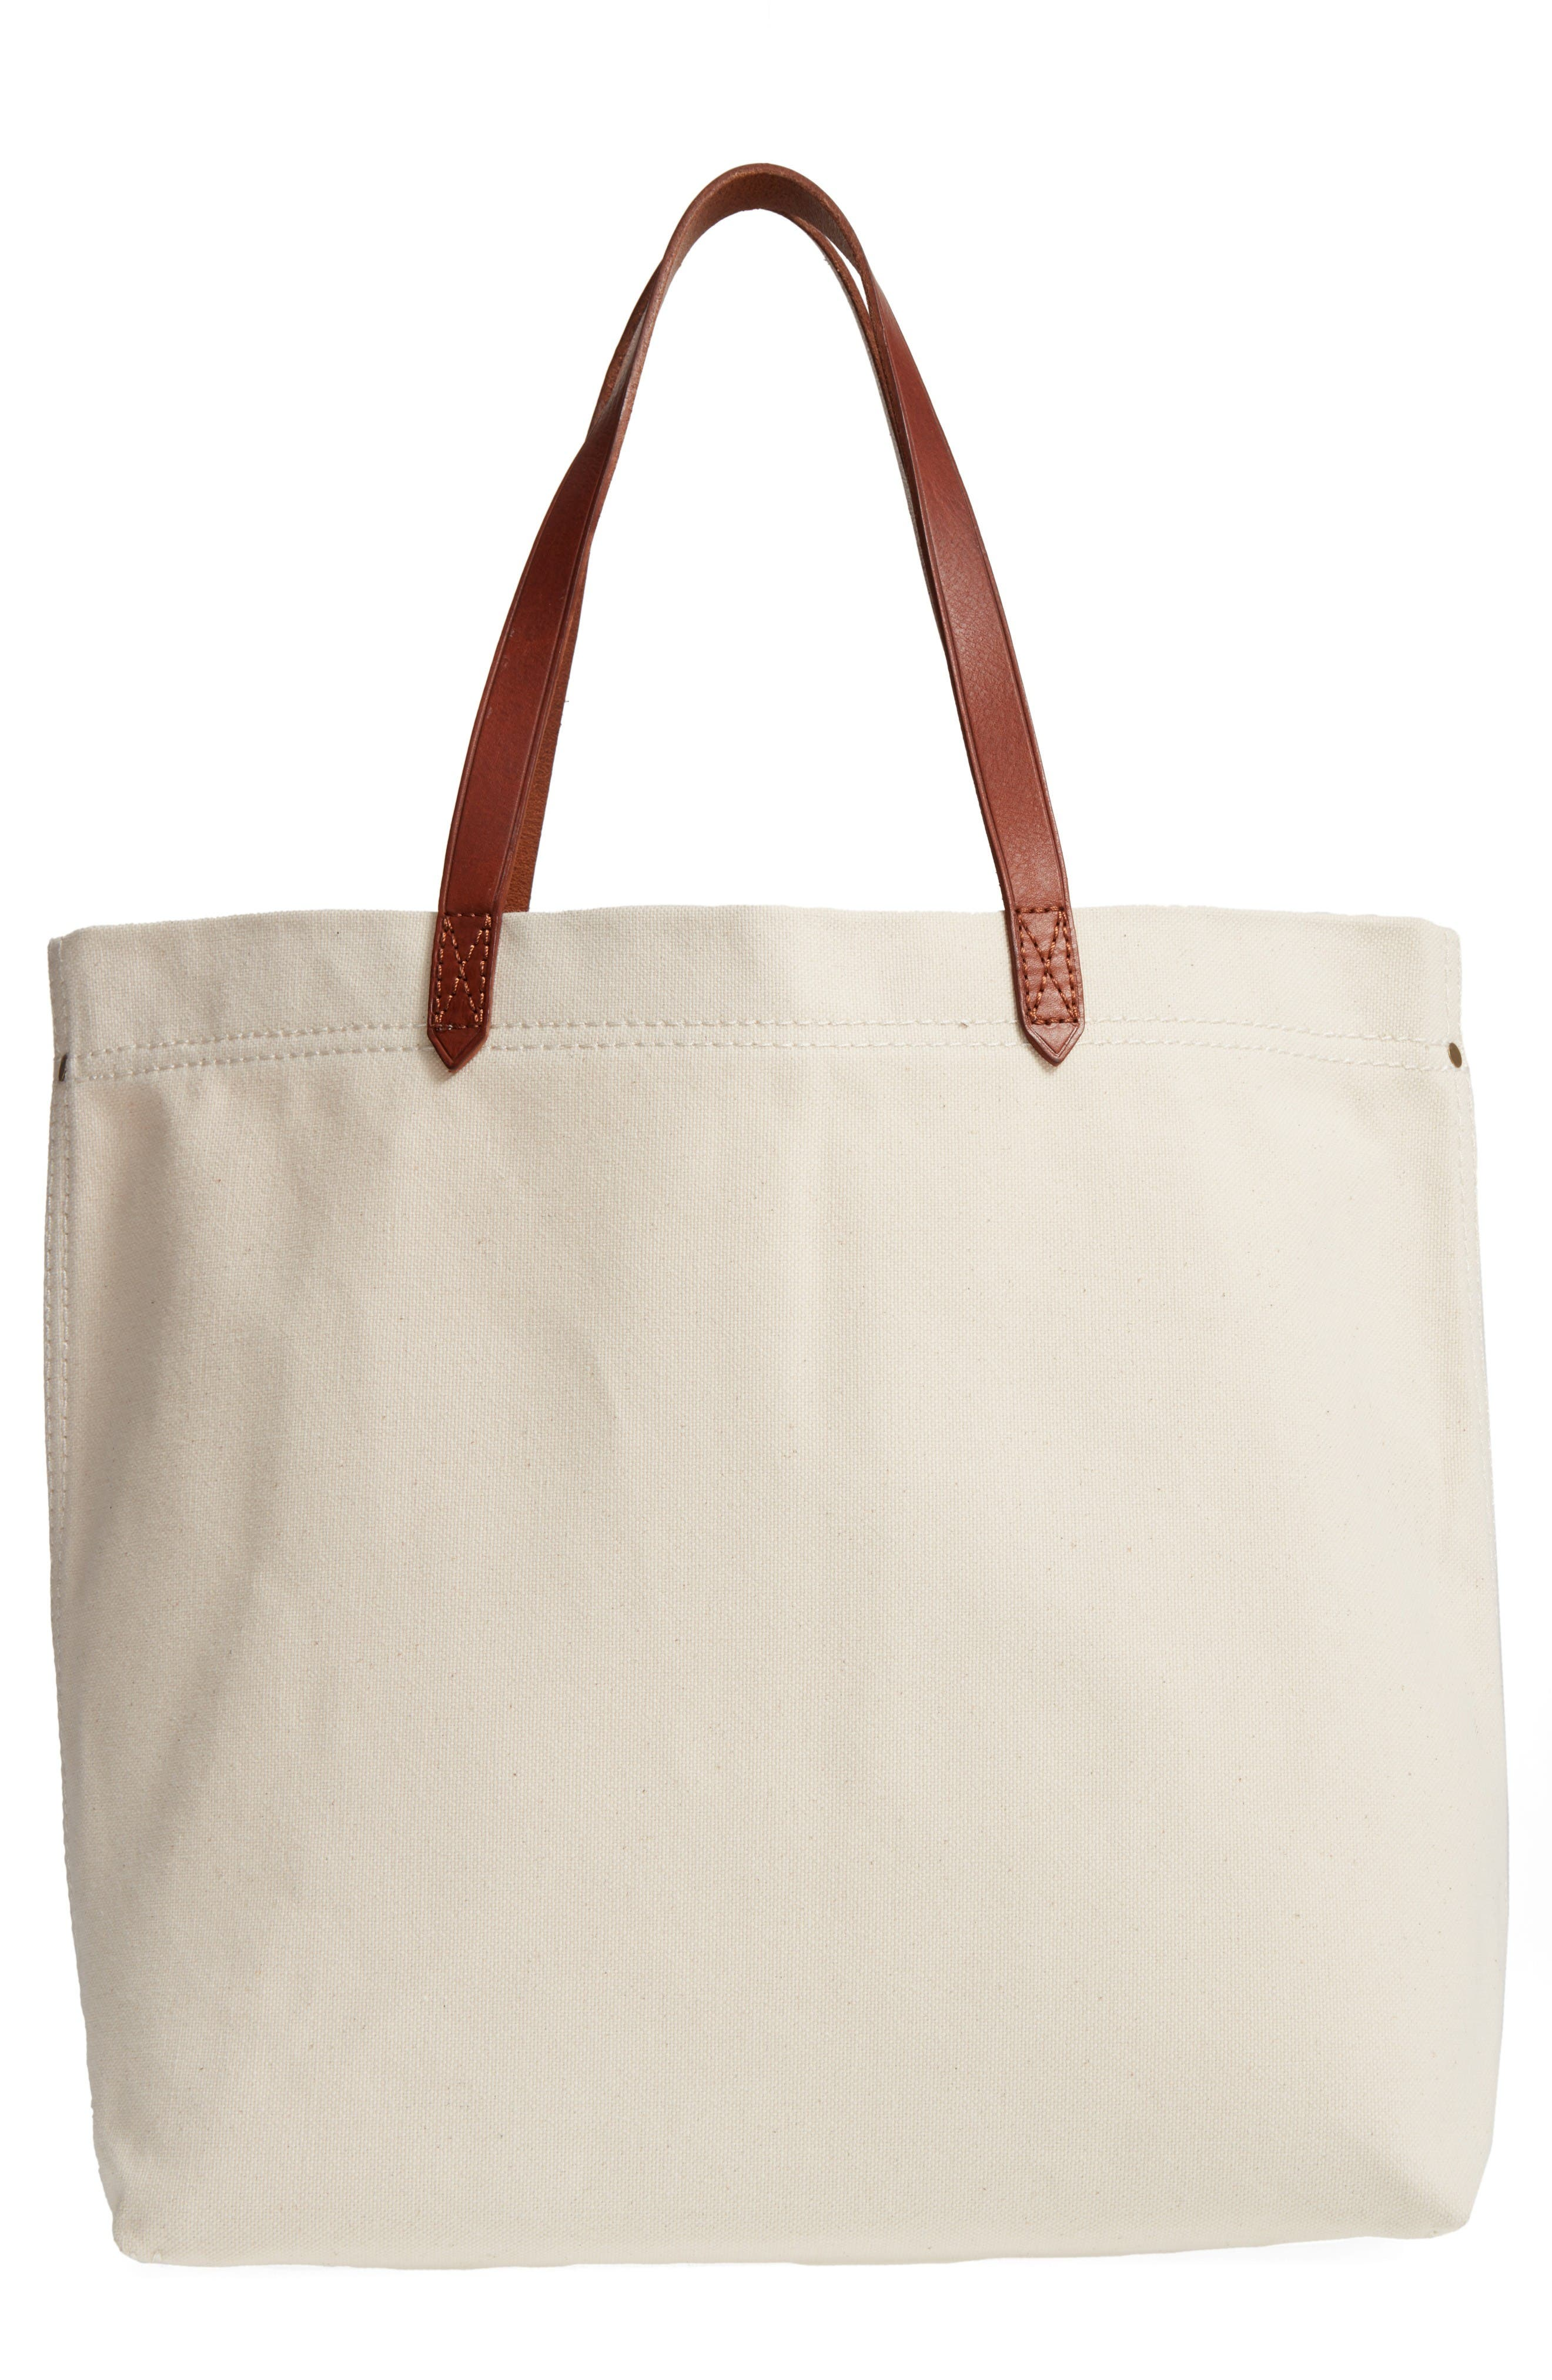 Alternate Image 1 Selected - Madewell Canvas Transport Tote